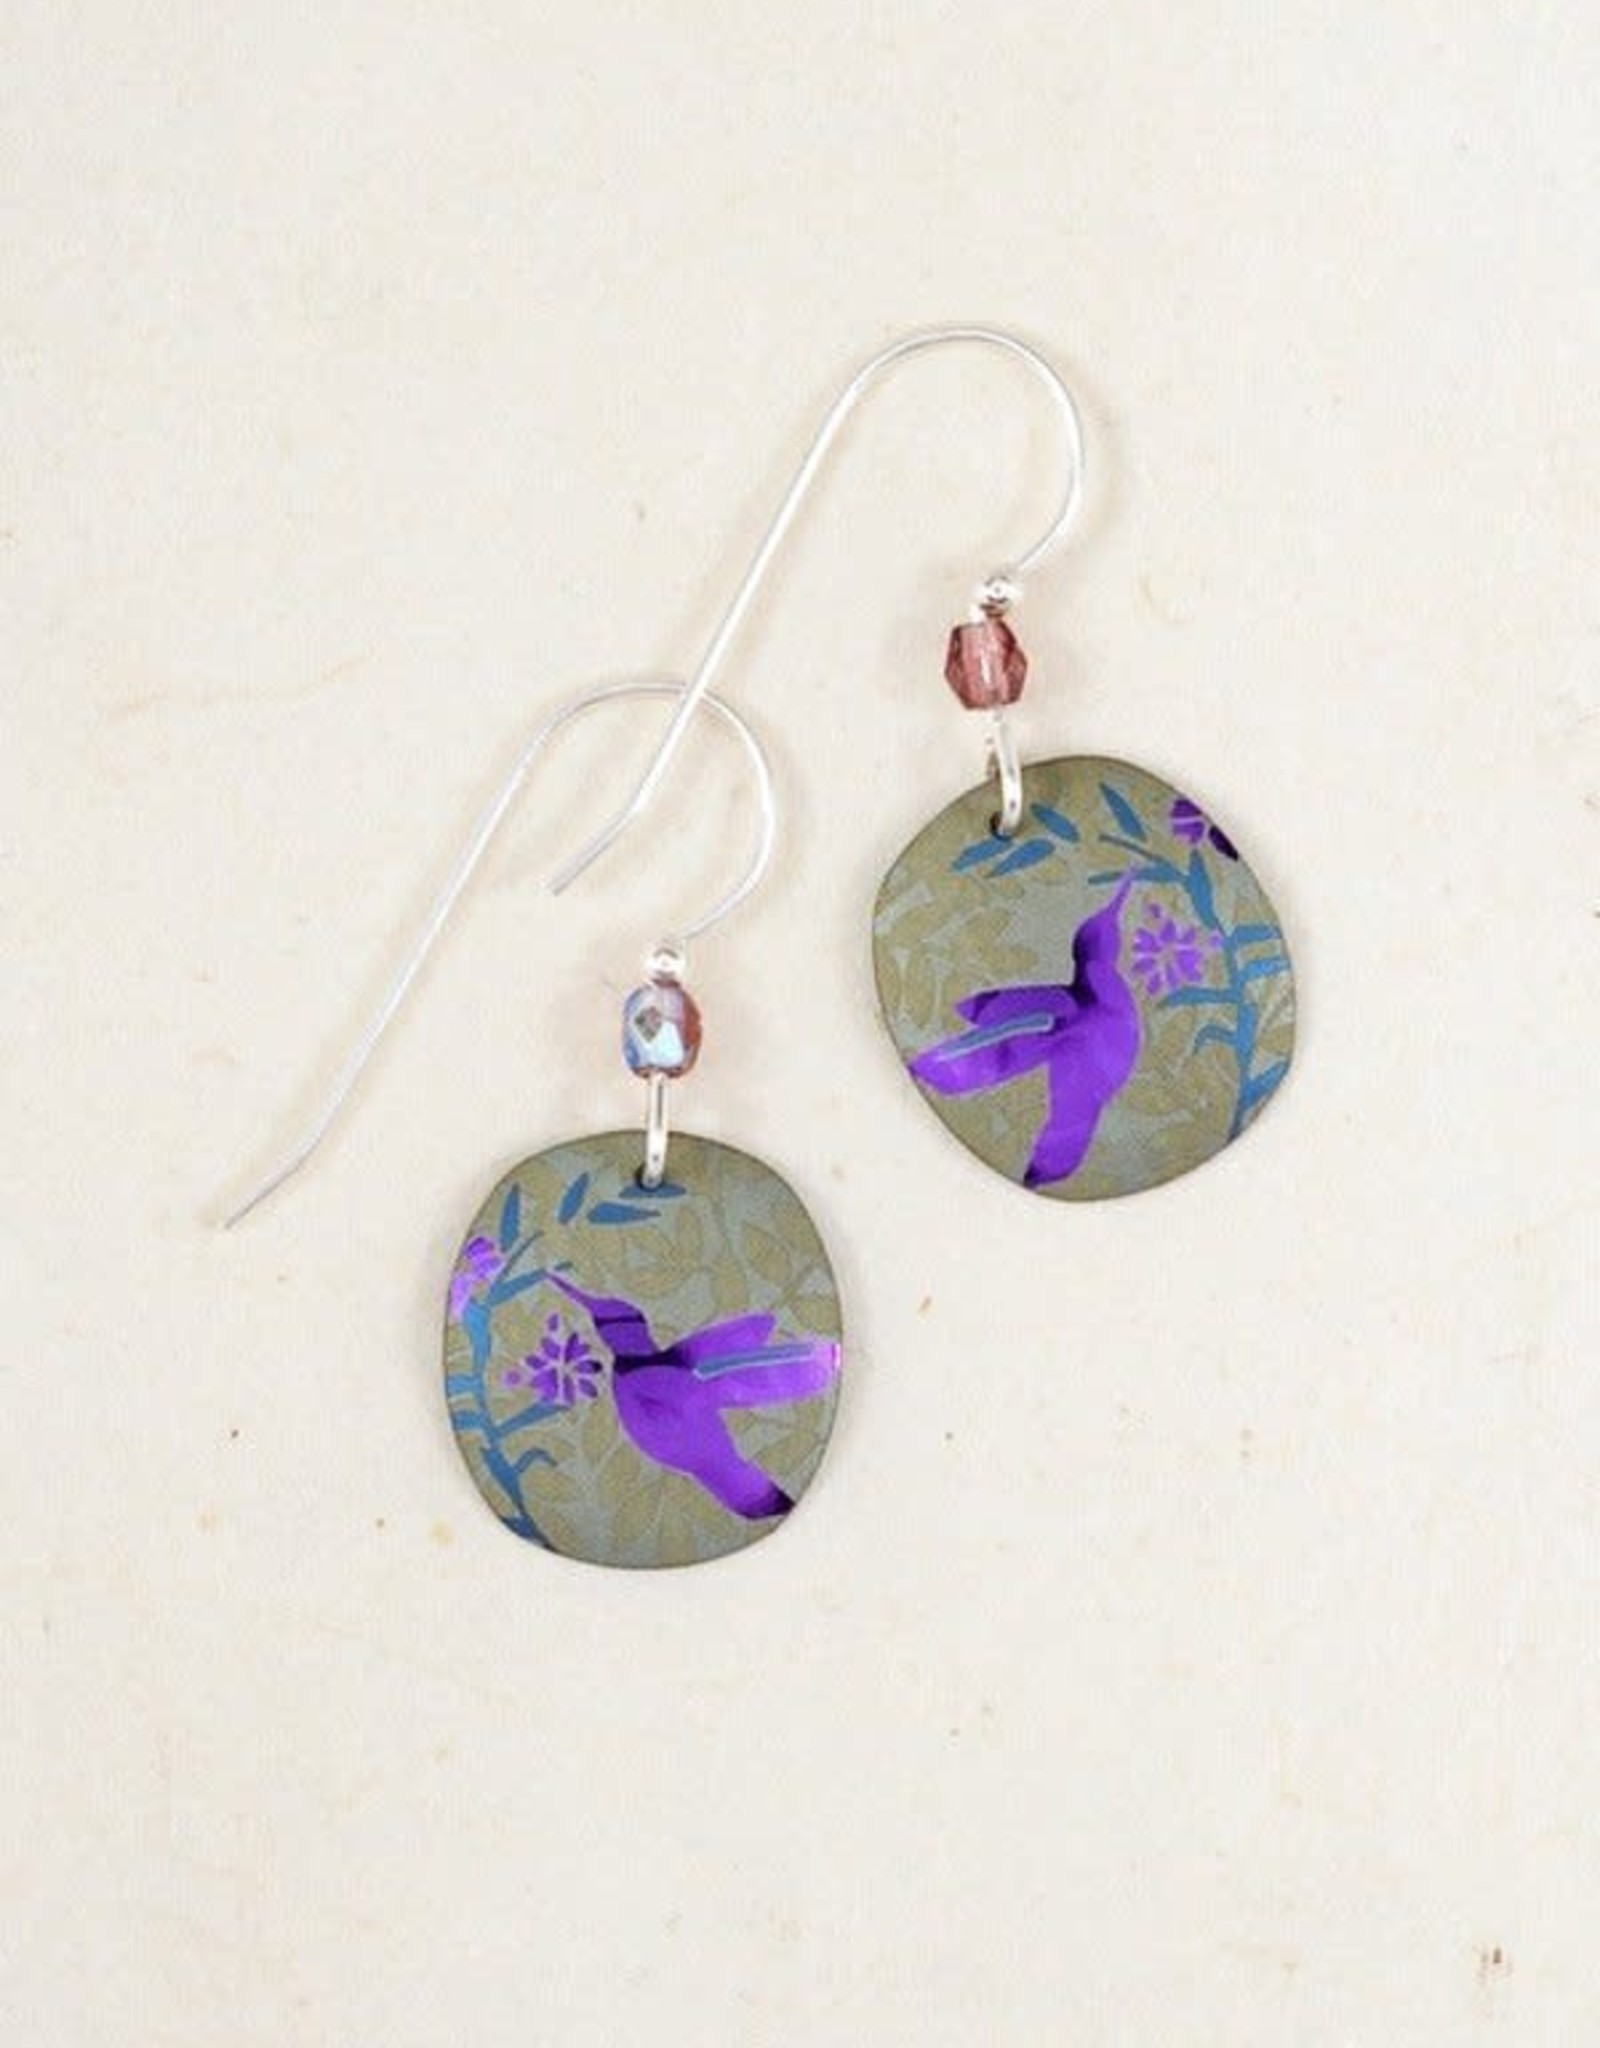 Holly Yashi Grey & Fuchsia Hummingbird Nectar Earrings